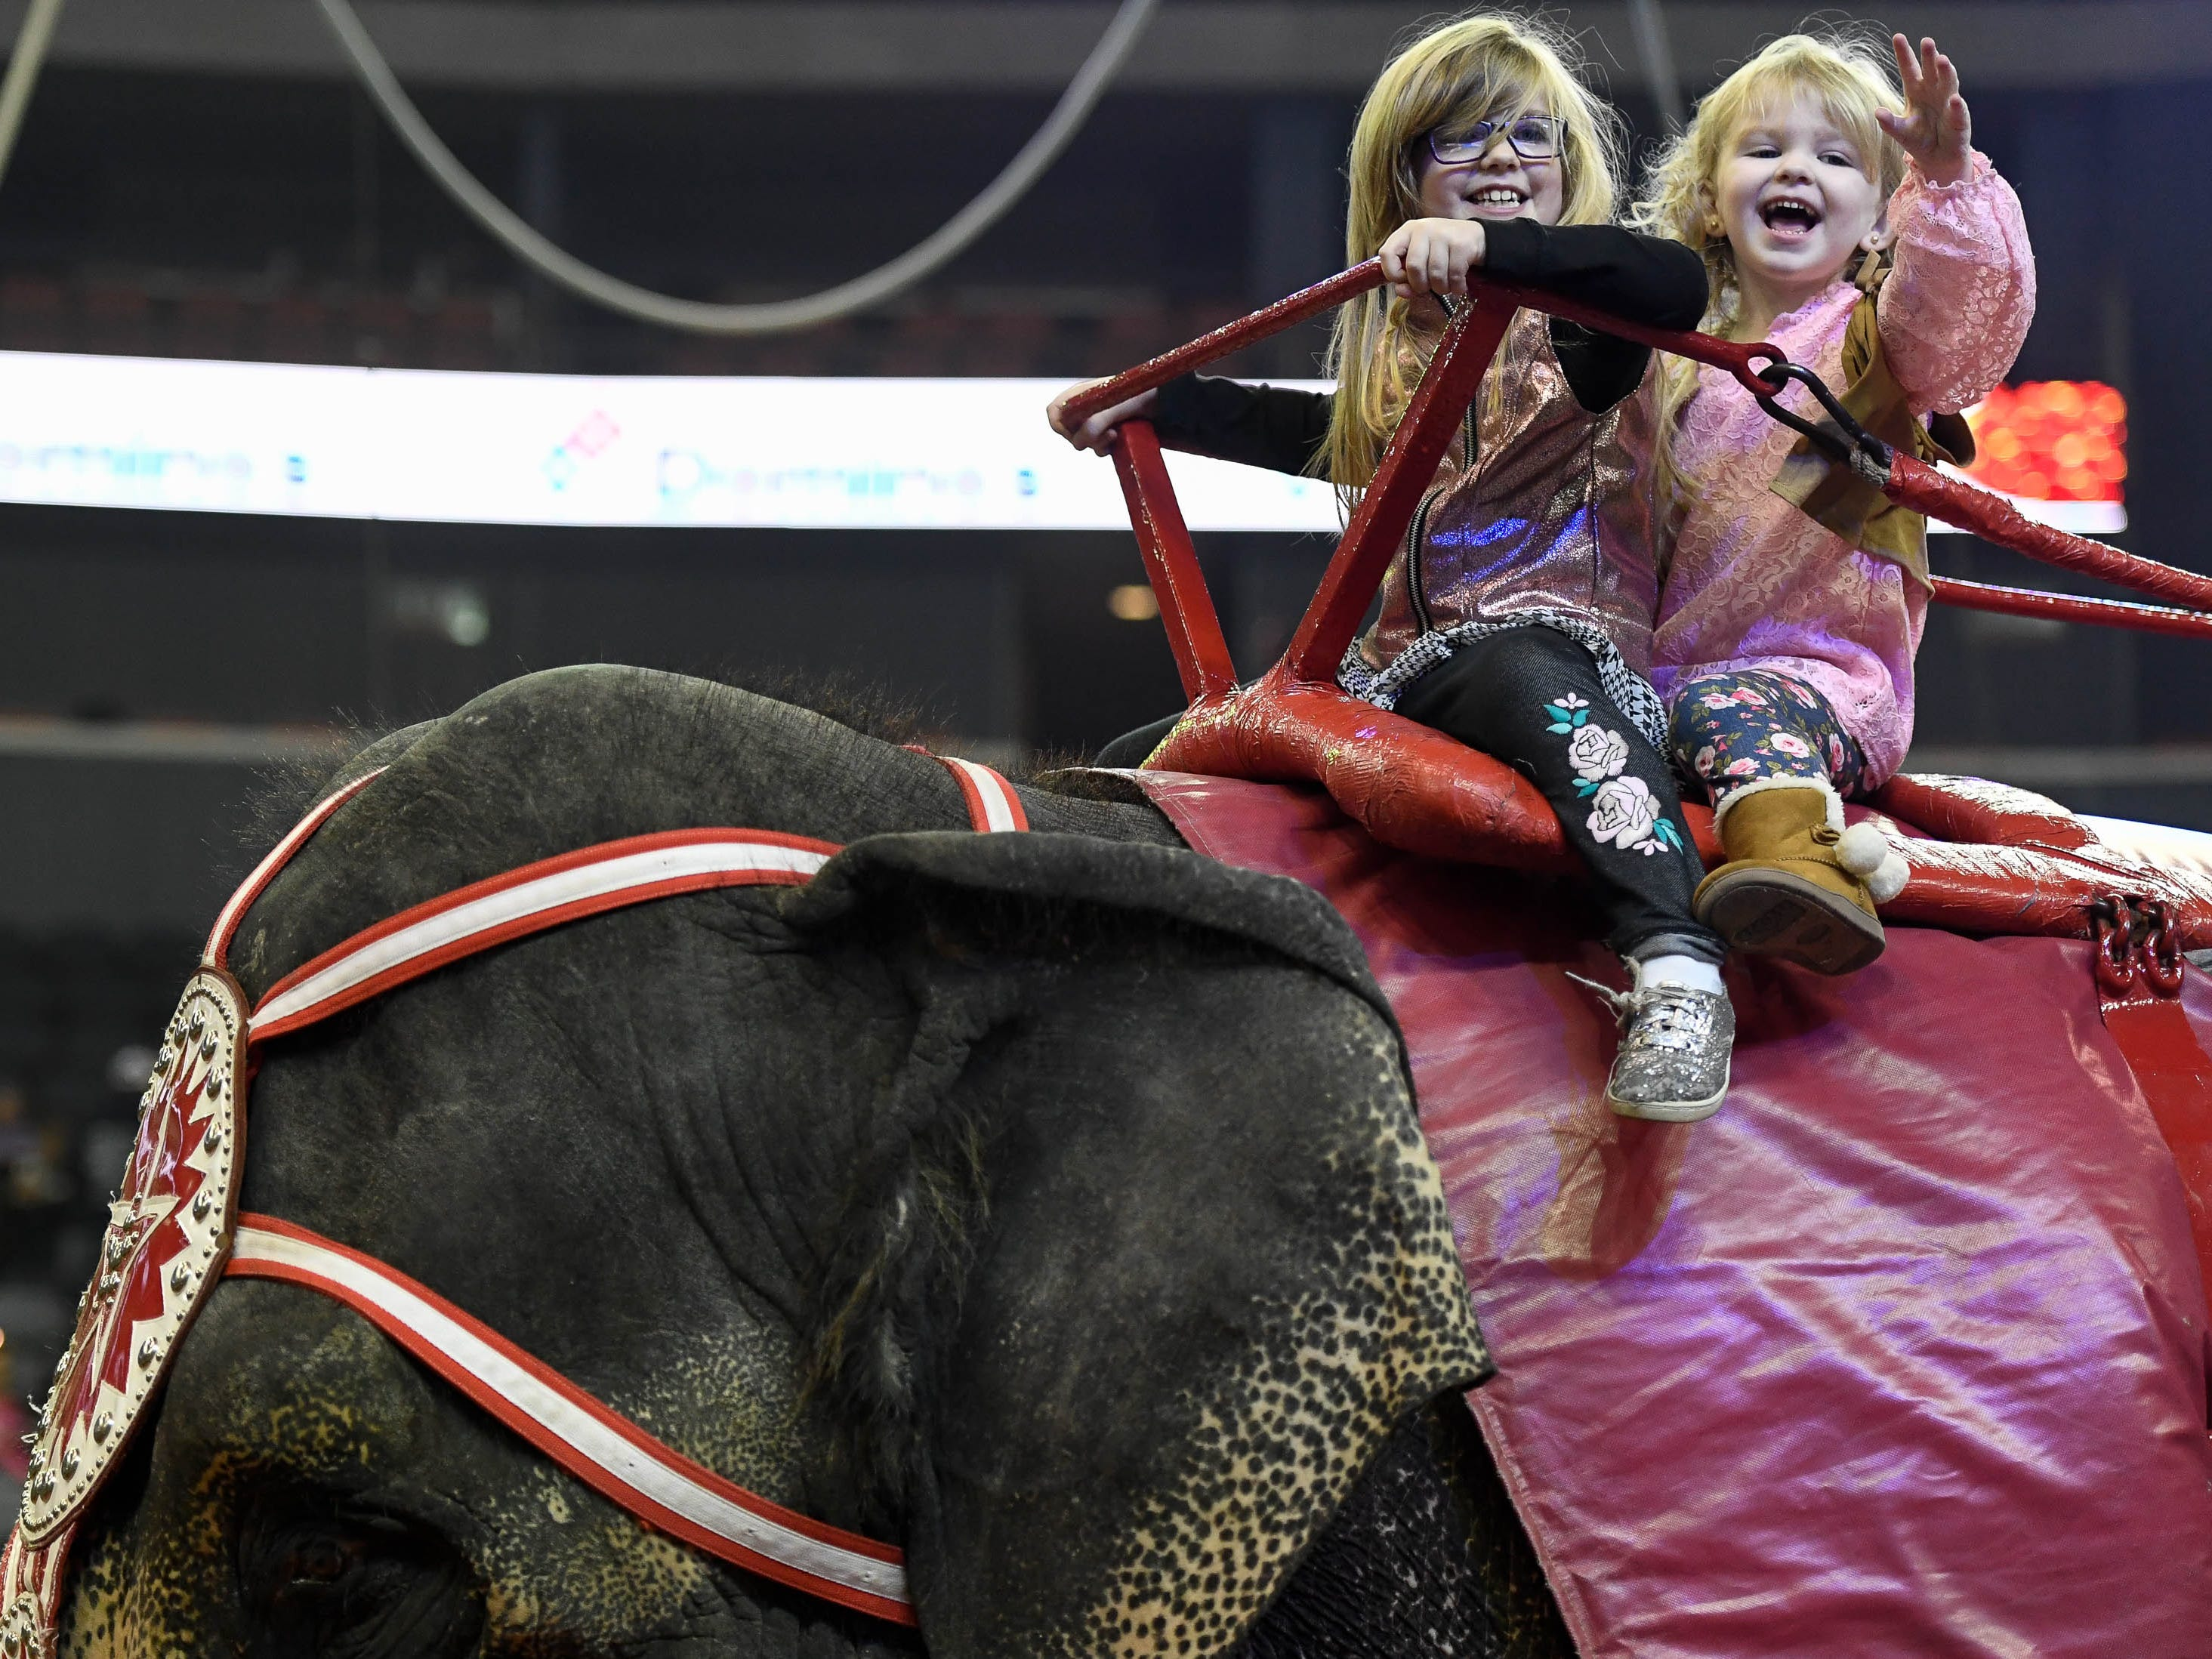 Sisters Emma, six years-old, and Chloe, four years-old,  Loehrlein get a chance to ride a elephant at the 85th annual Hadi Shrine Circus at the Evansville Ford Center Friday, November 23, 2018.